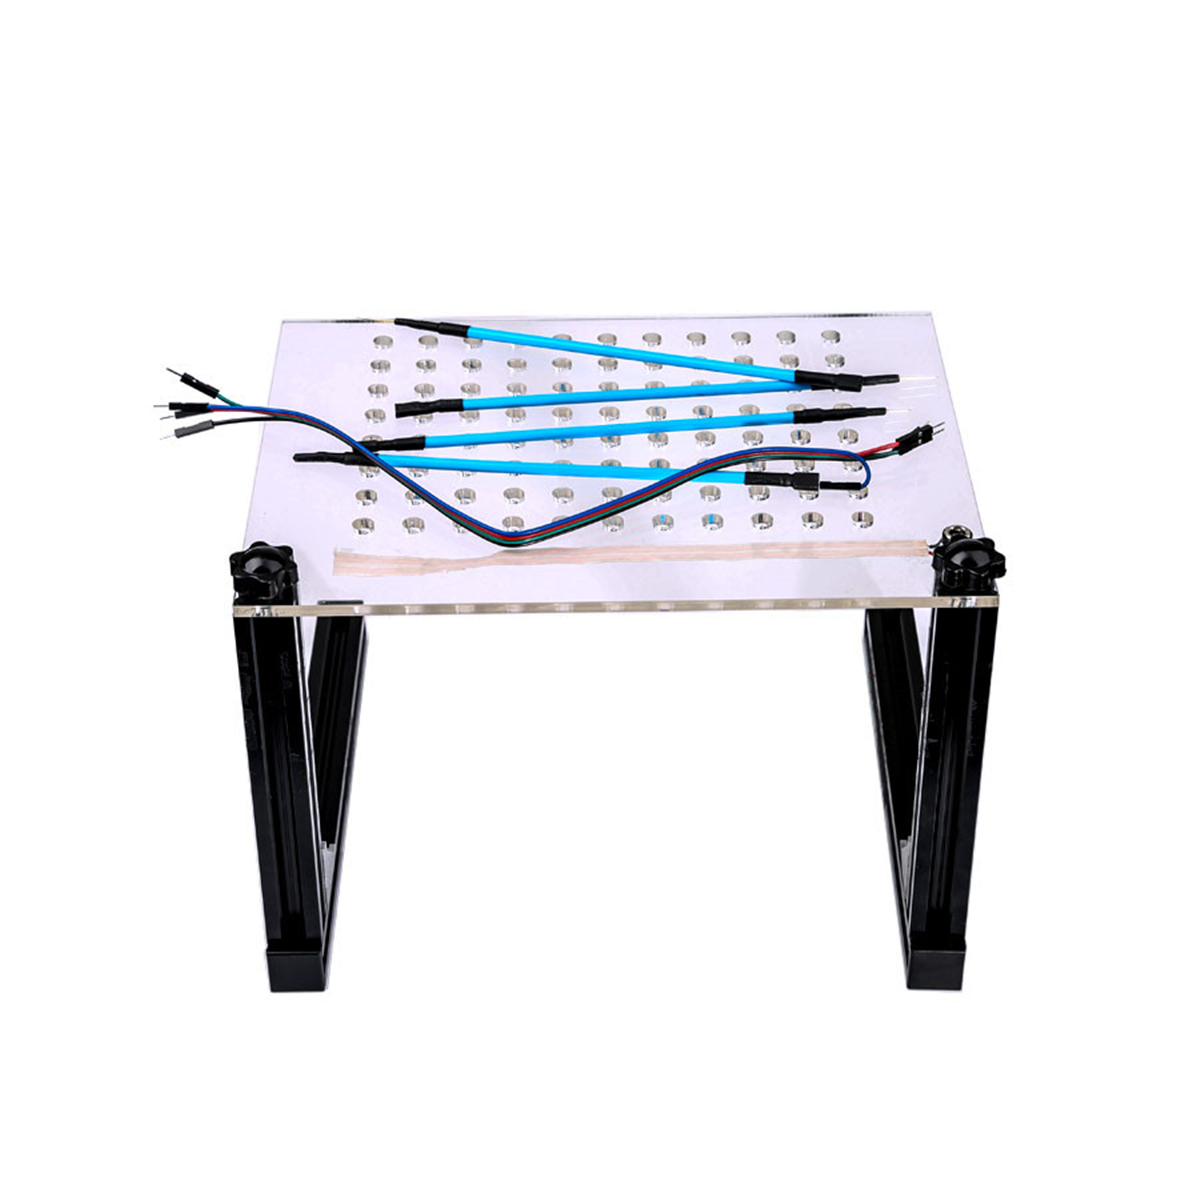 LED BDM Frame Bracket Mesh 4 Probe Pens ECU Board Modified Programmer Connect Cables For ECU